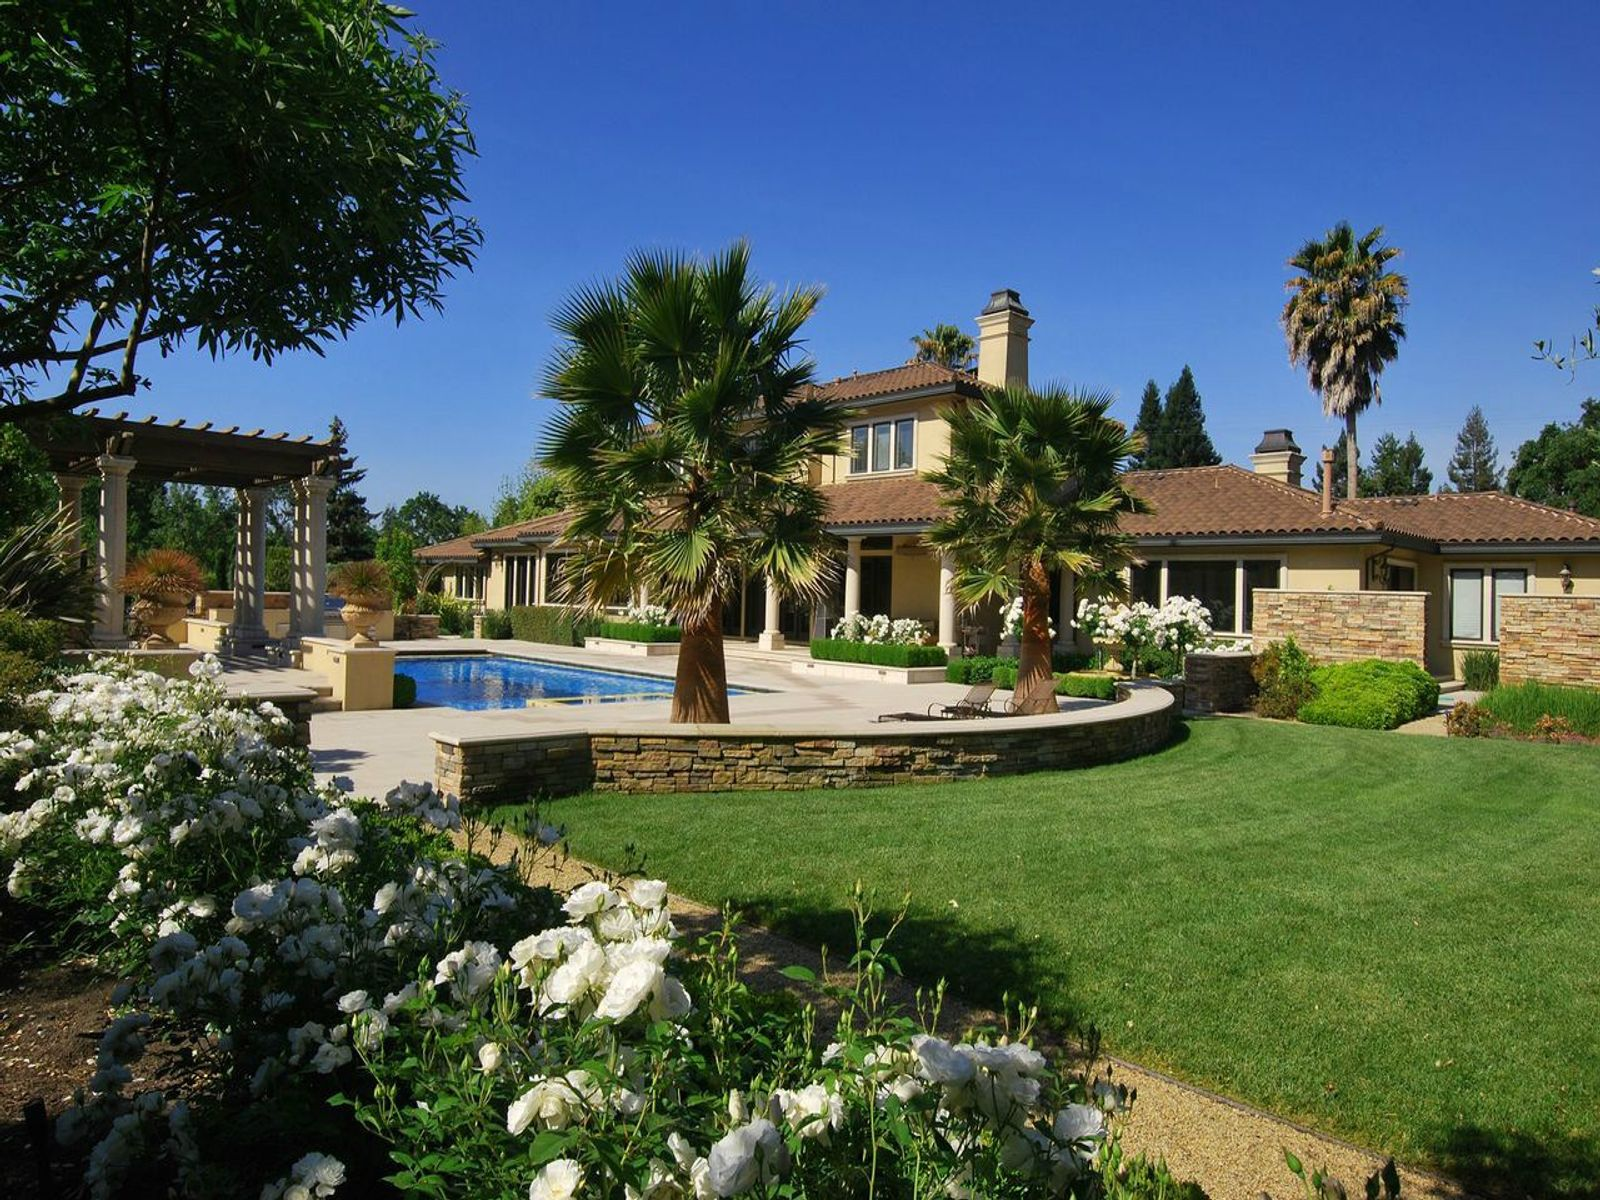 Approx 1.21 acres of lawn, gardens, swimming pool